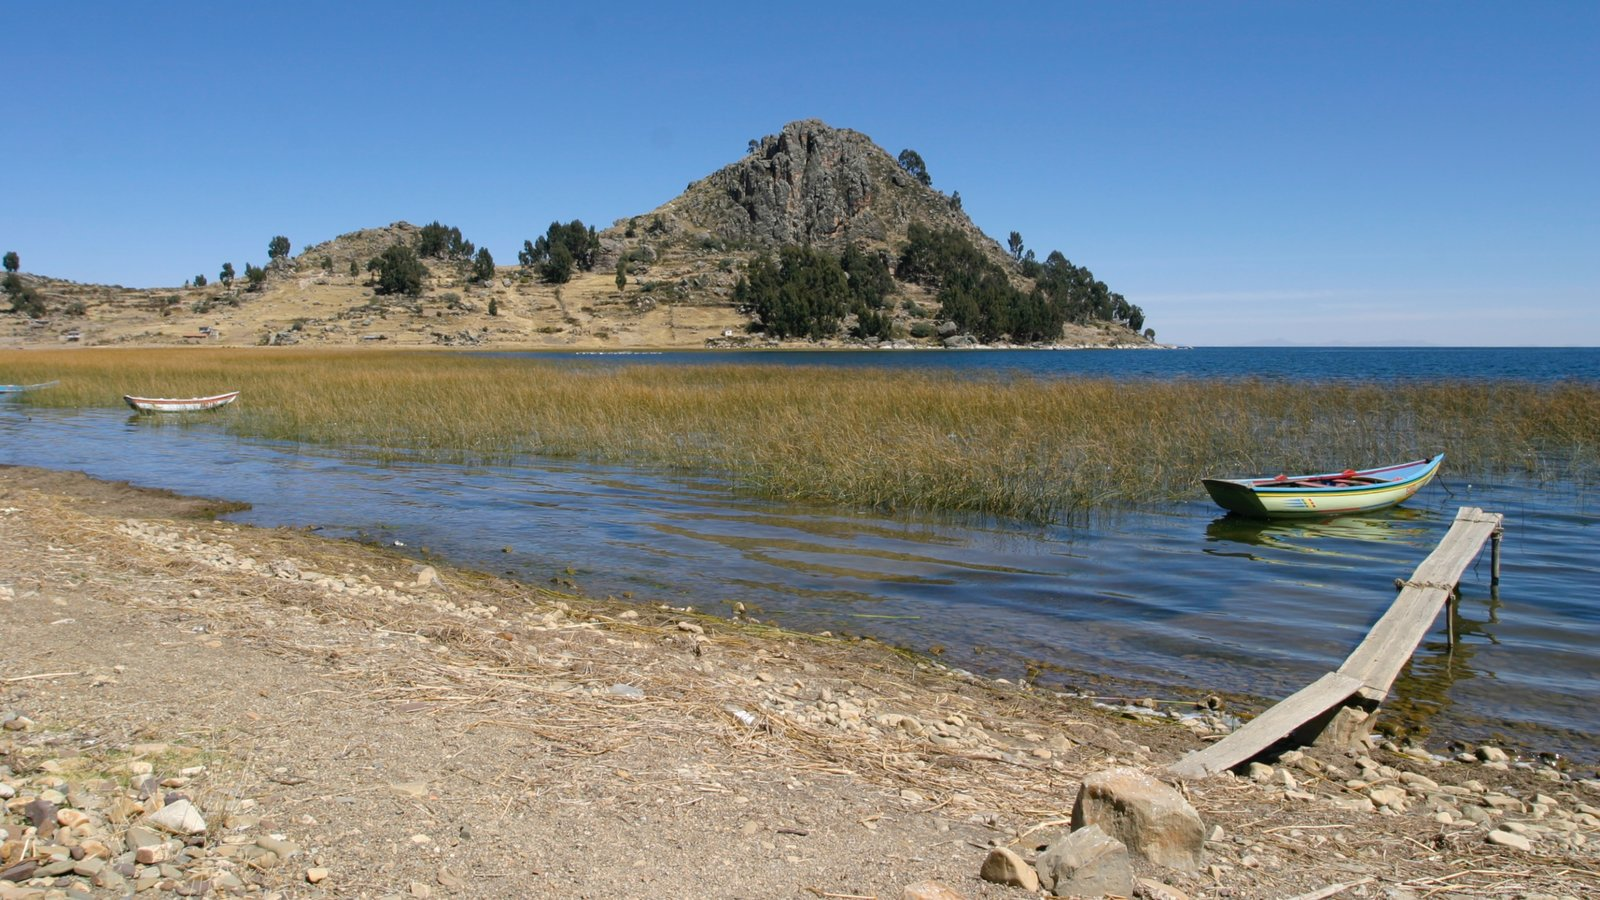 Lake Titicaca - Puno featuring a lake or waterhole, kayaking or canoeing and general coastal views